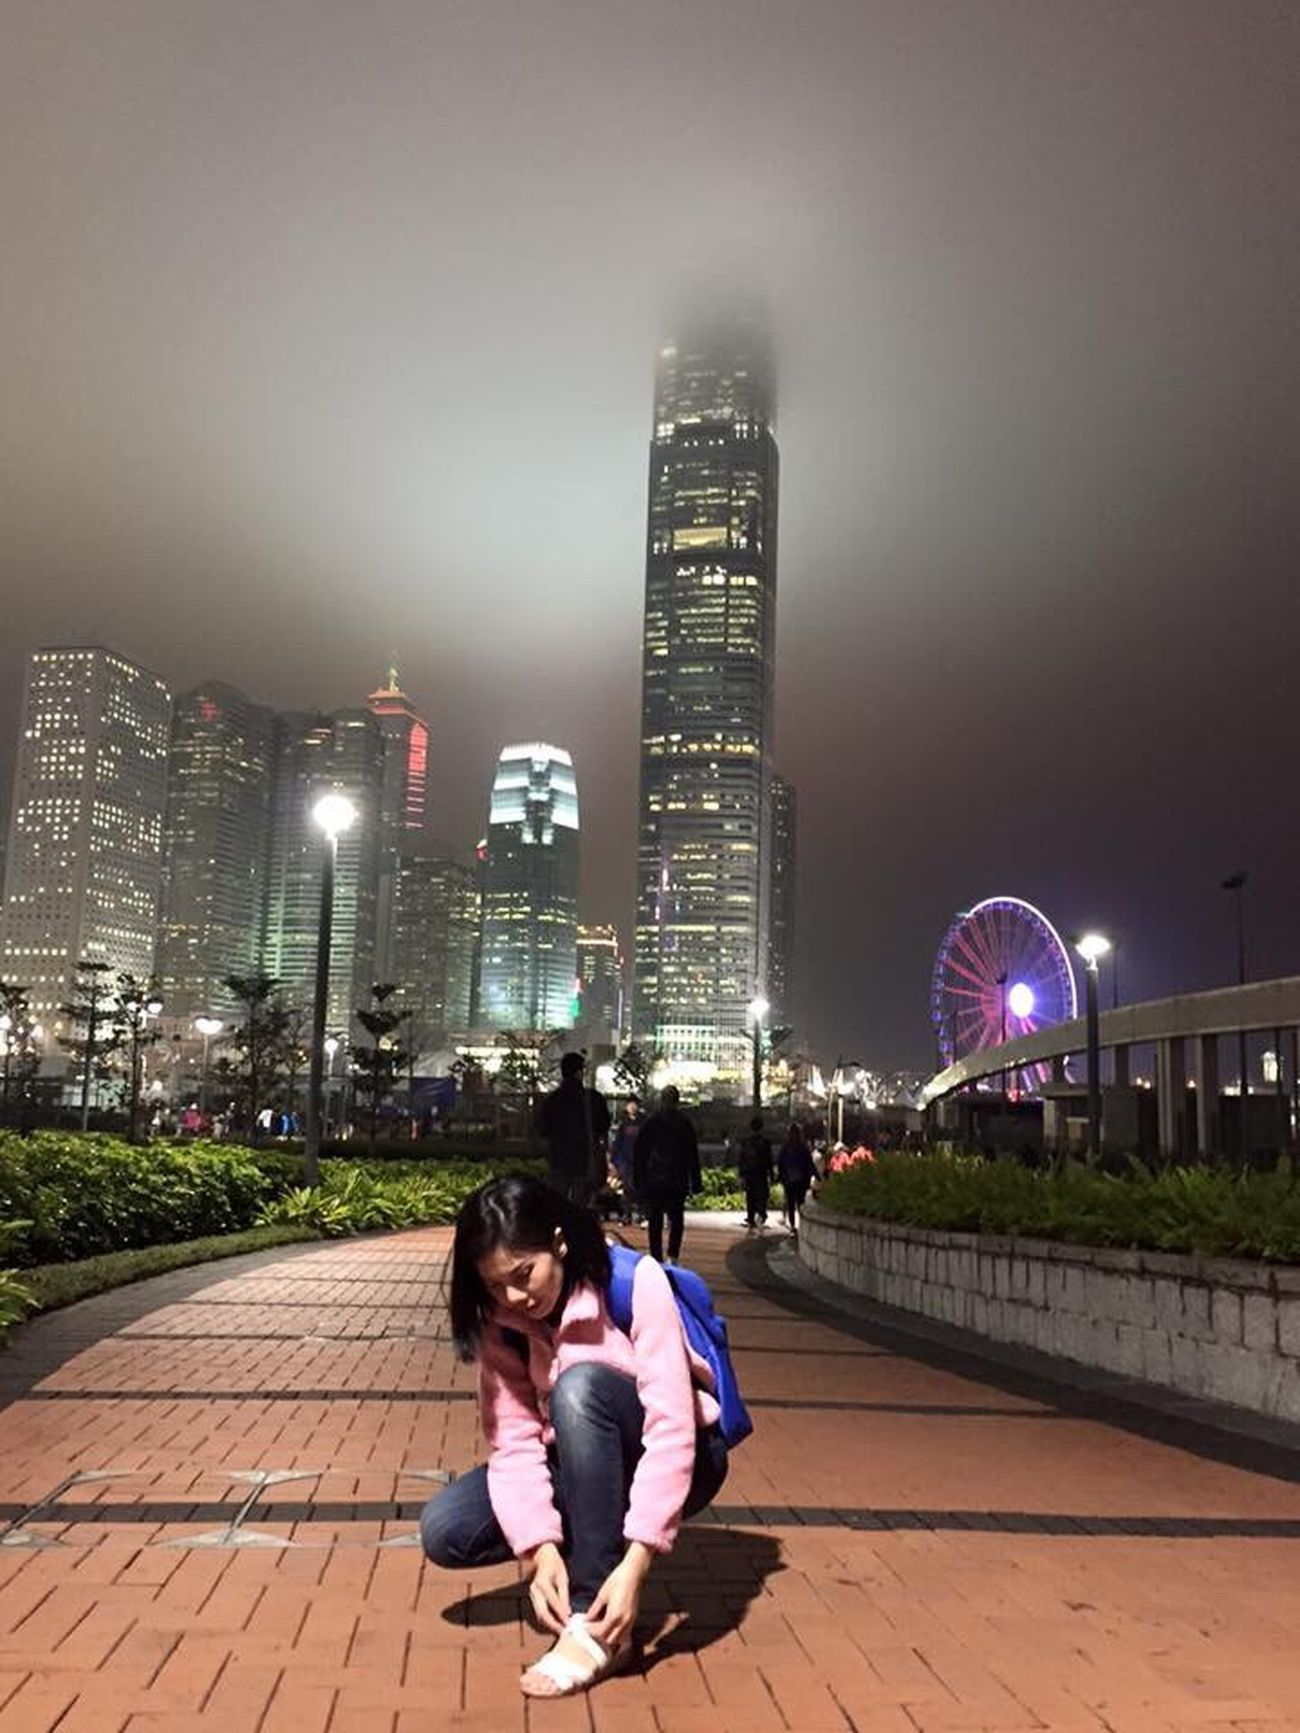 Inthecity  HongKong Tonight Foggy Night Hongkong Island Alone Sosad Justme Travel Eyemthailand